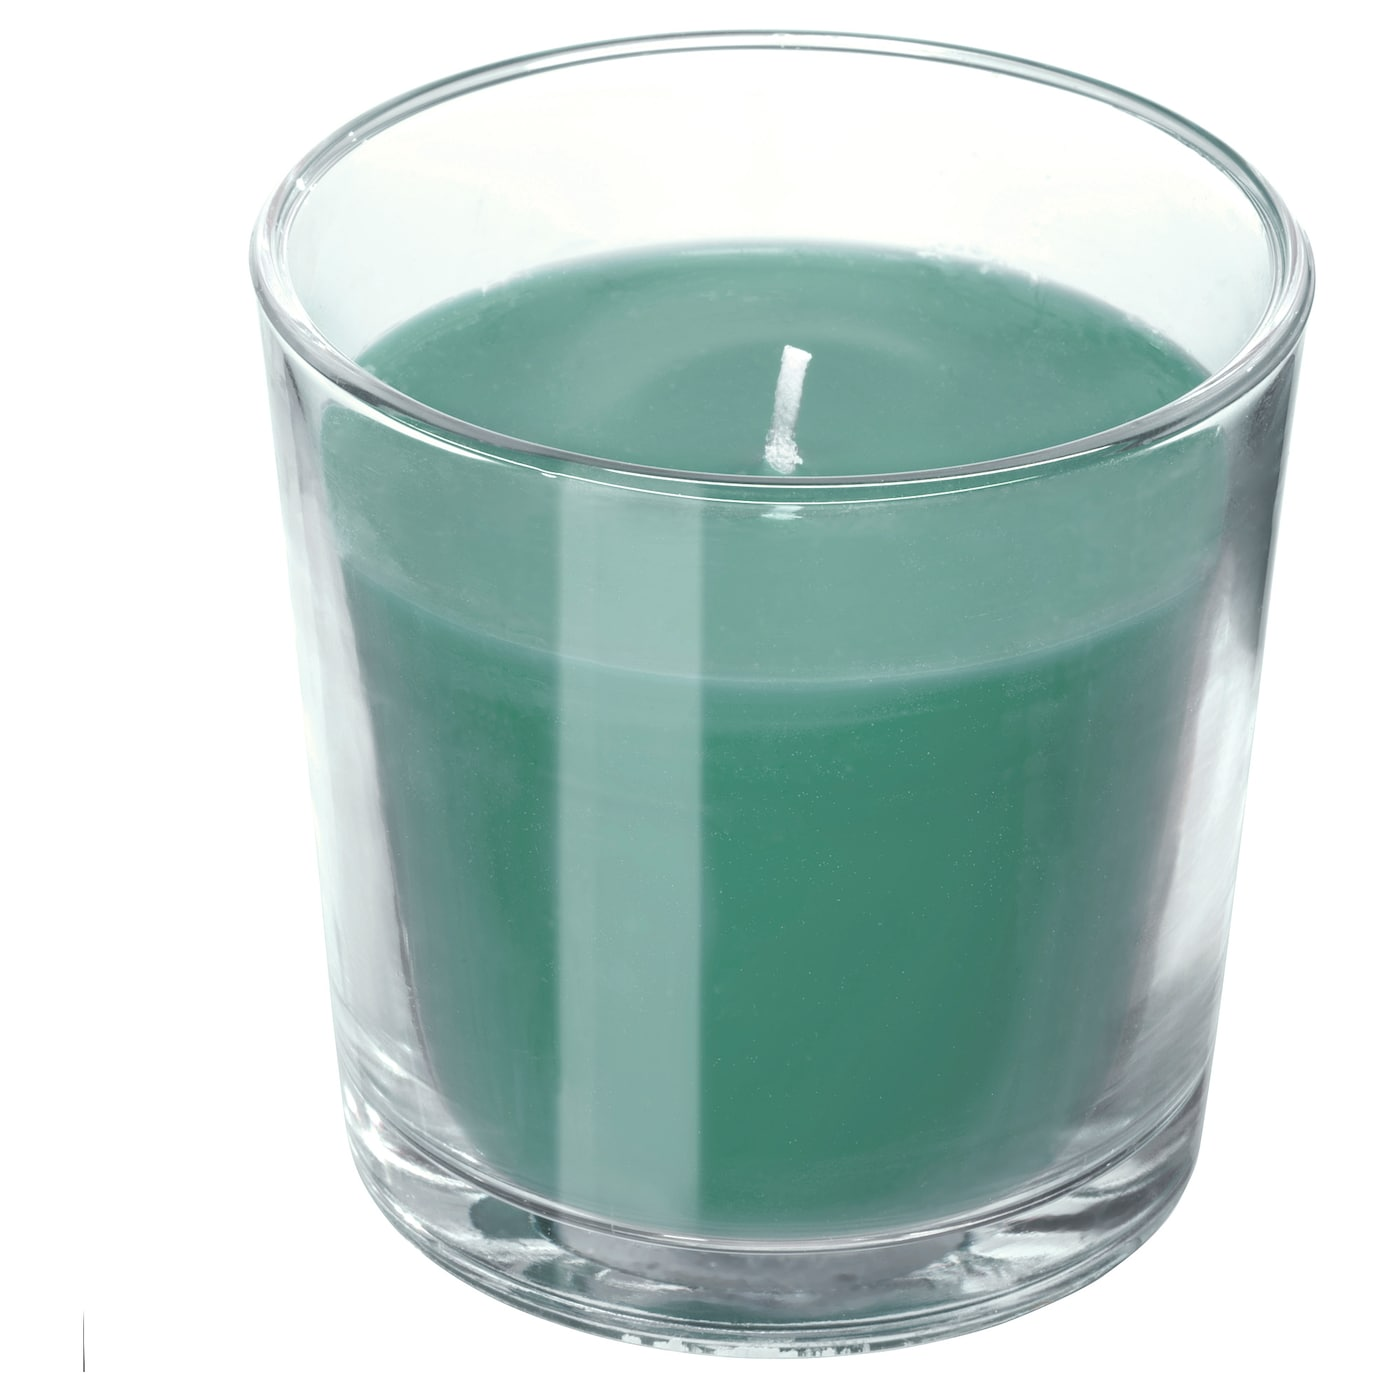 IKEA SINNLIG scented candle in glass A crisp and fresh scent of frosty apples and grass.